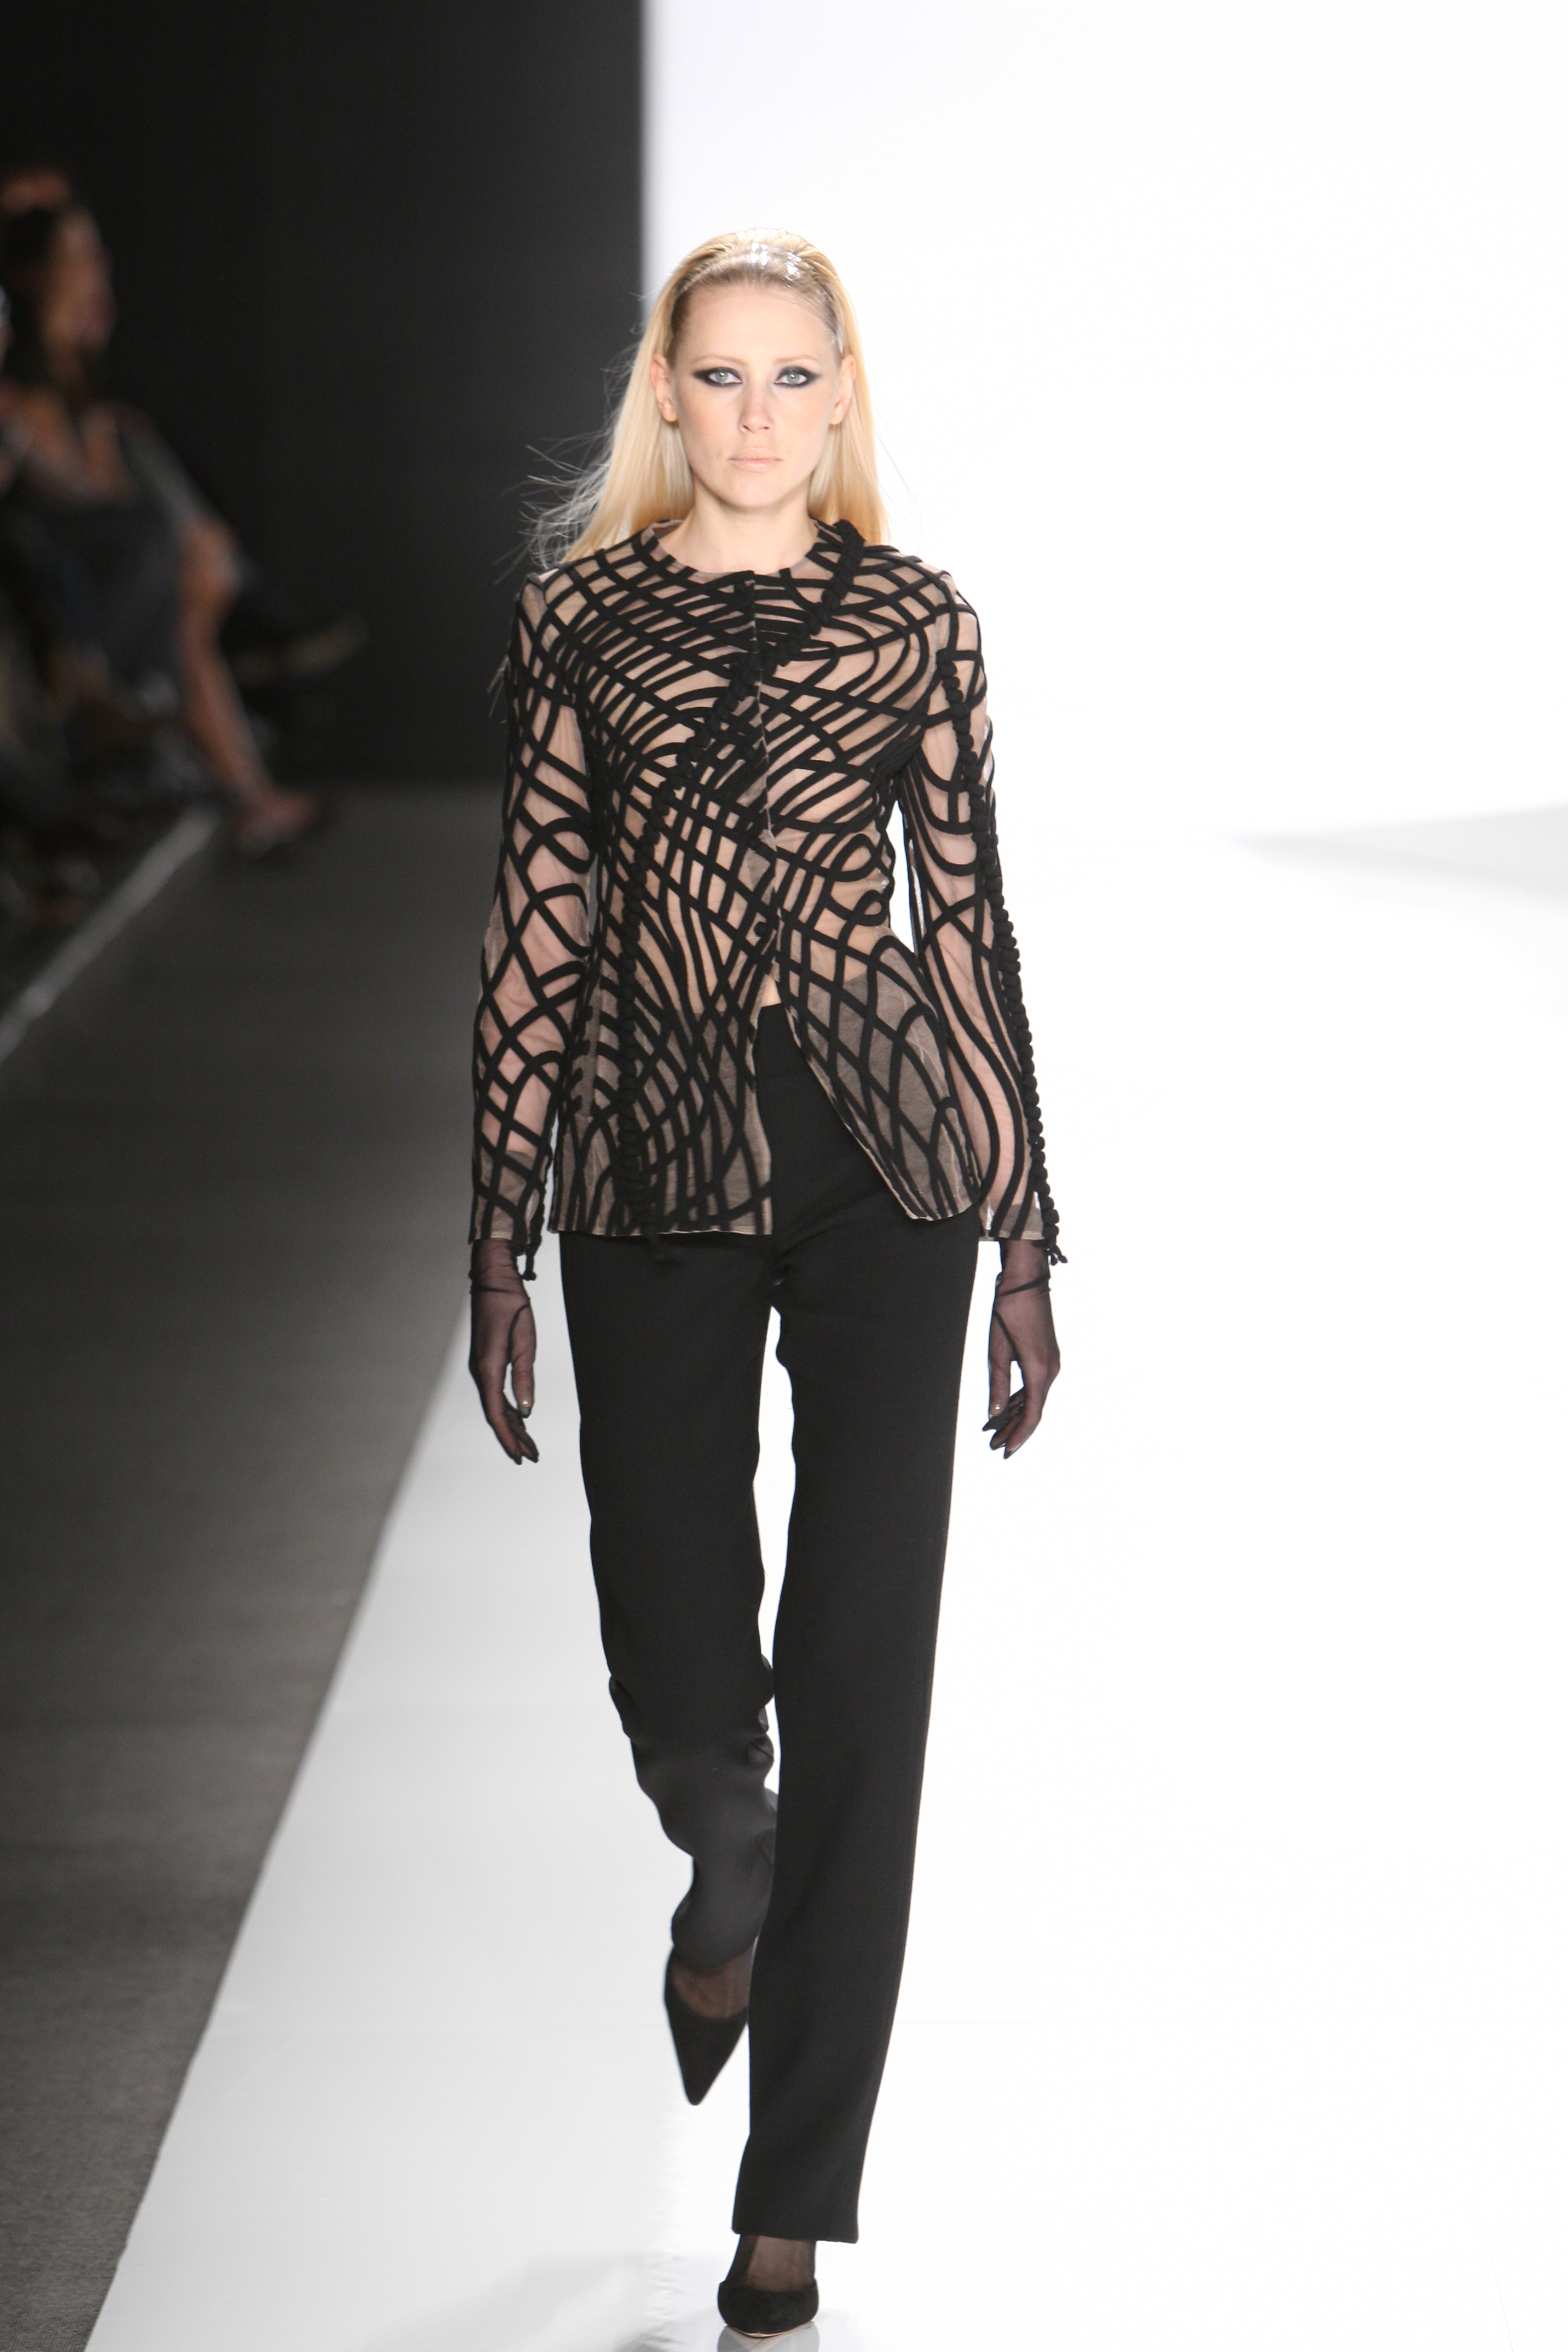 A model on the runway at Chado Ralph Rucci's fall 2009 show in New York City.